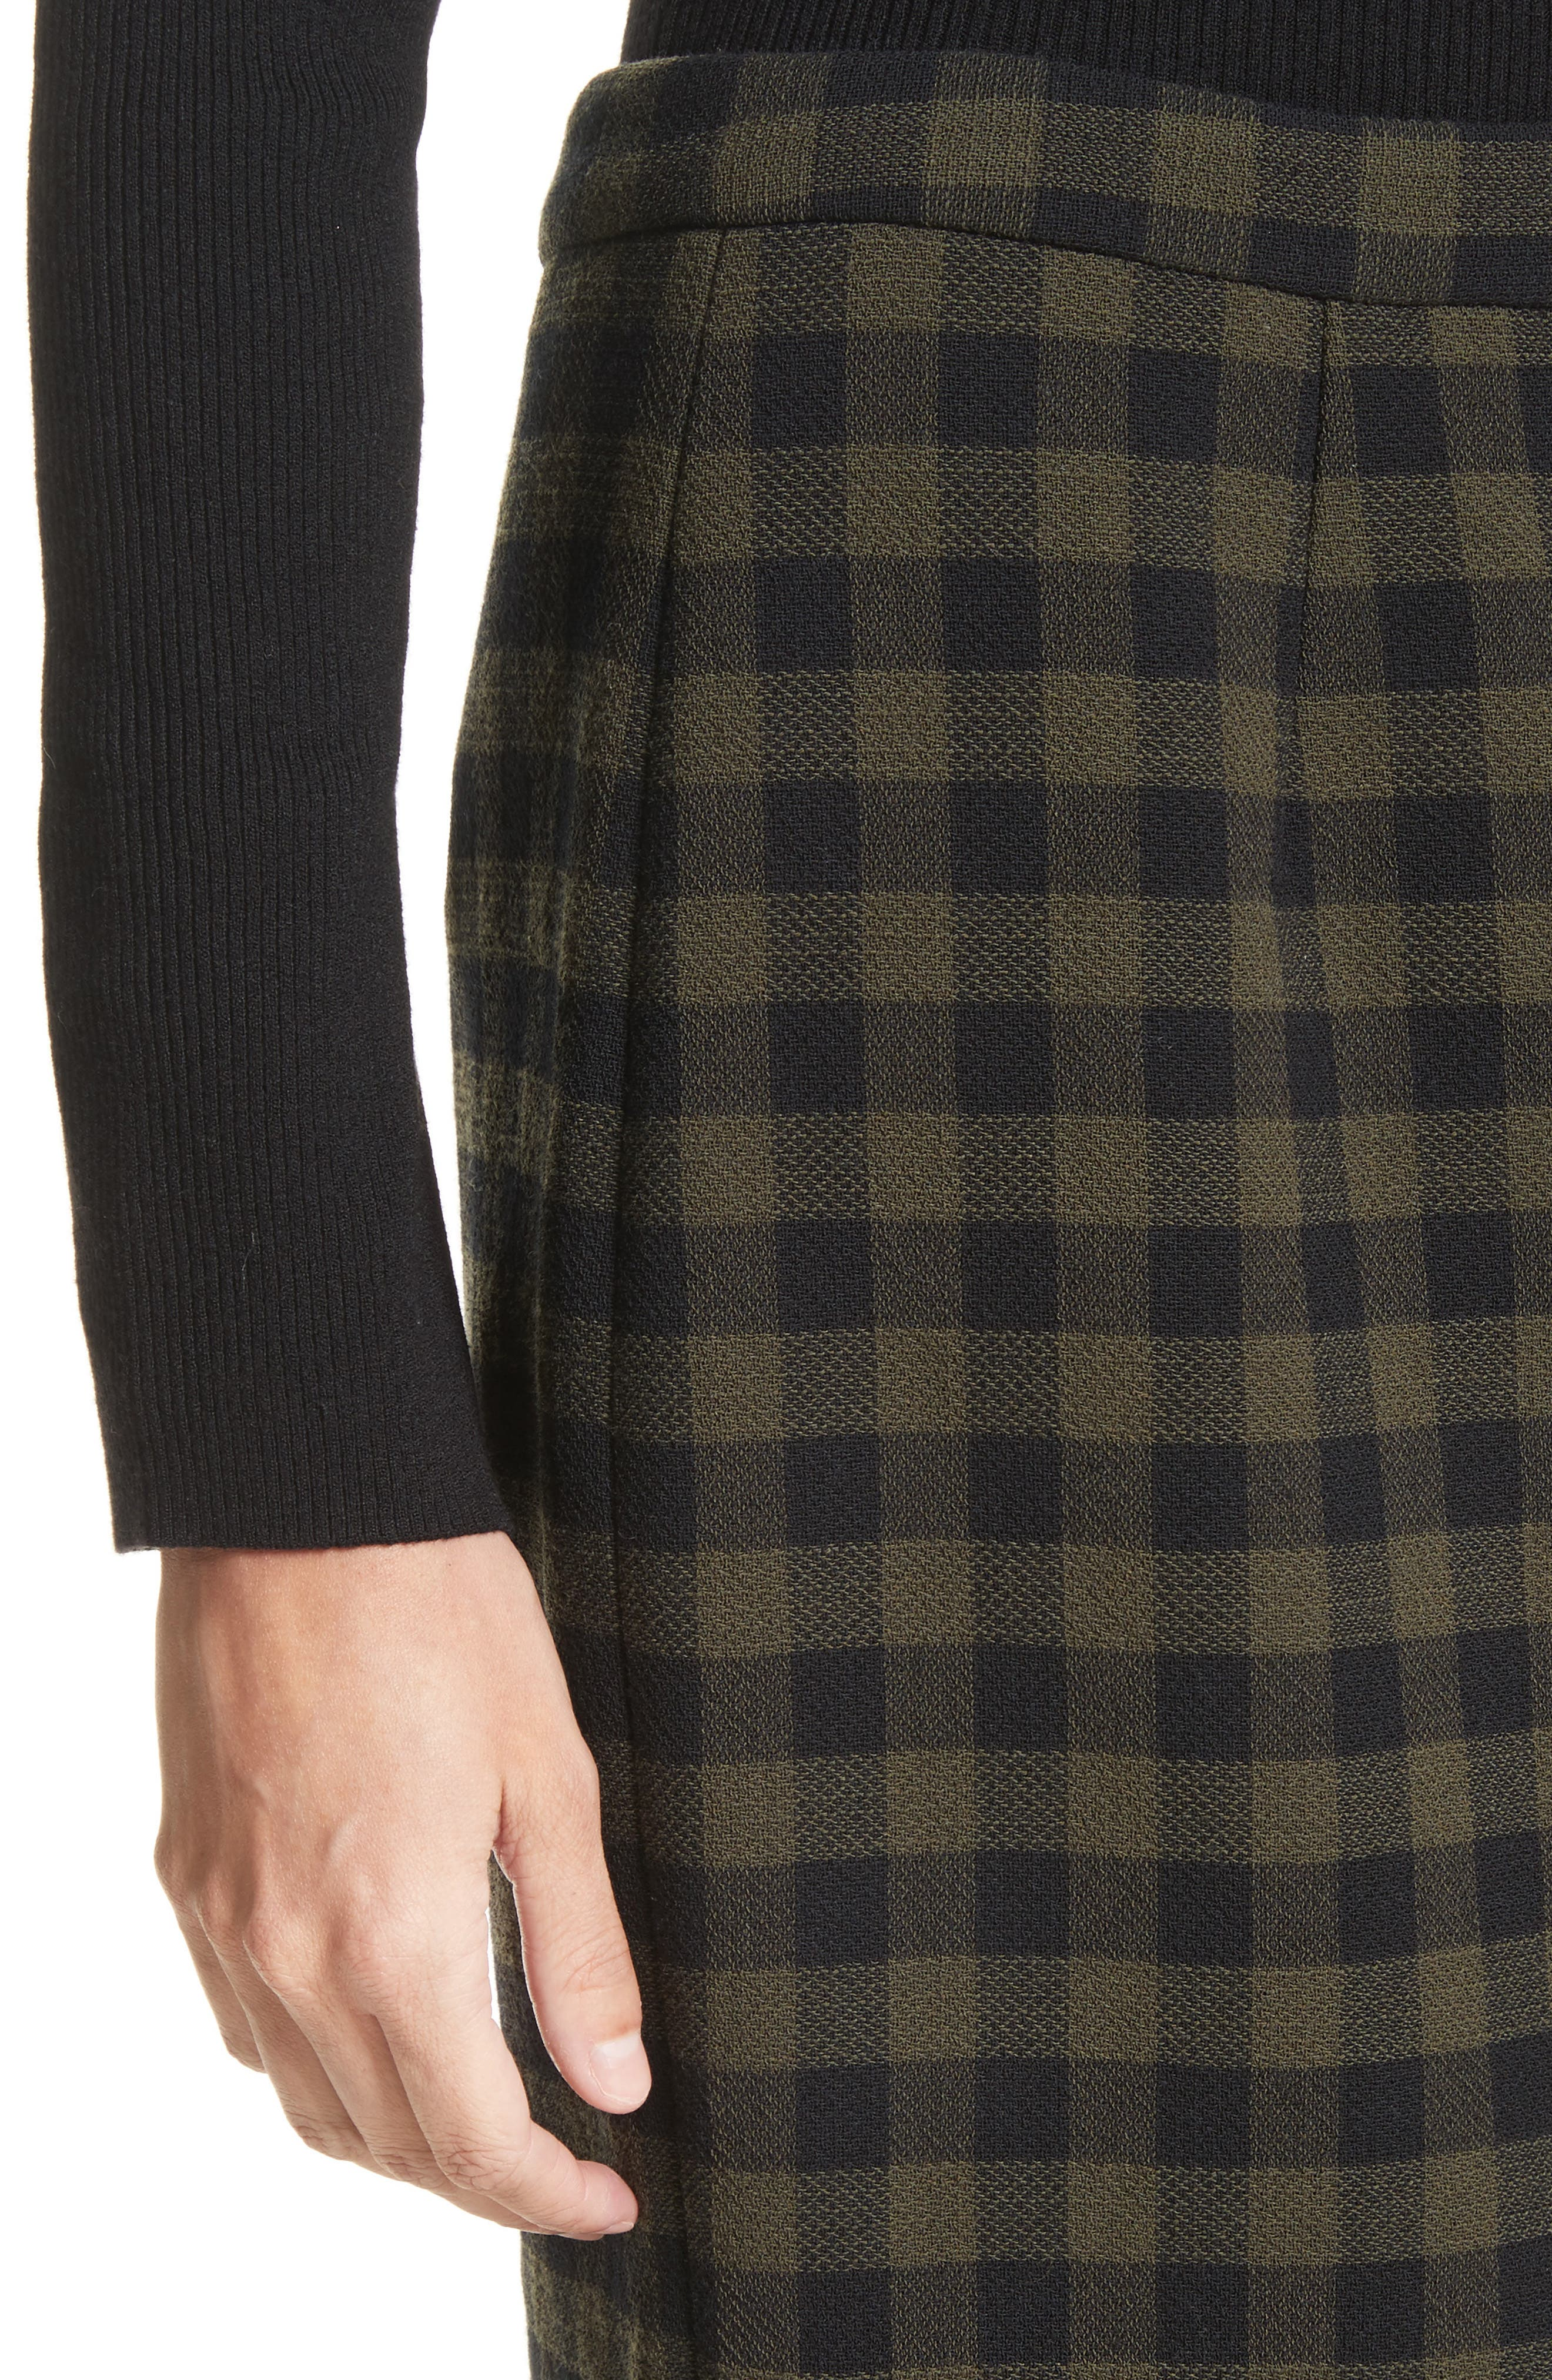 Thea Plaid Wool Pencil Skirt,                             Alternate thumbnail 5, color,                             Army/ Black